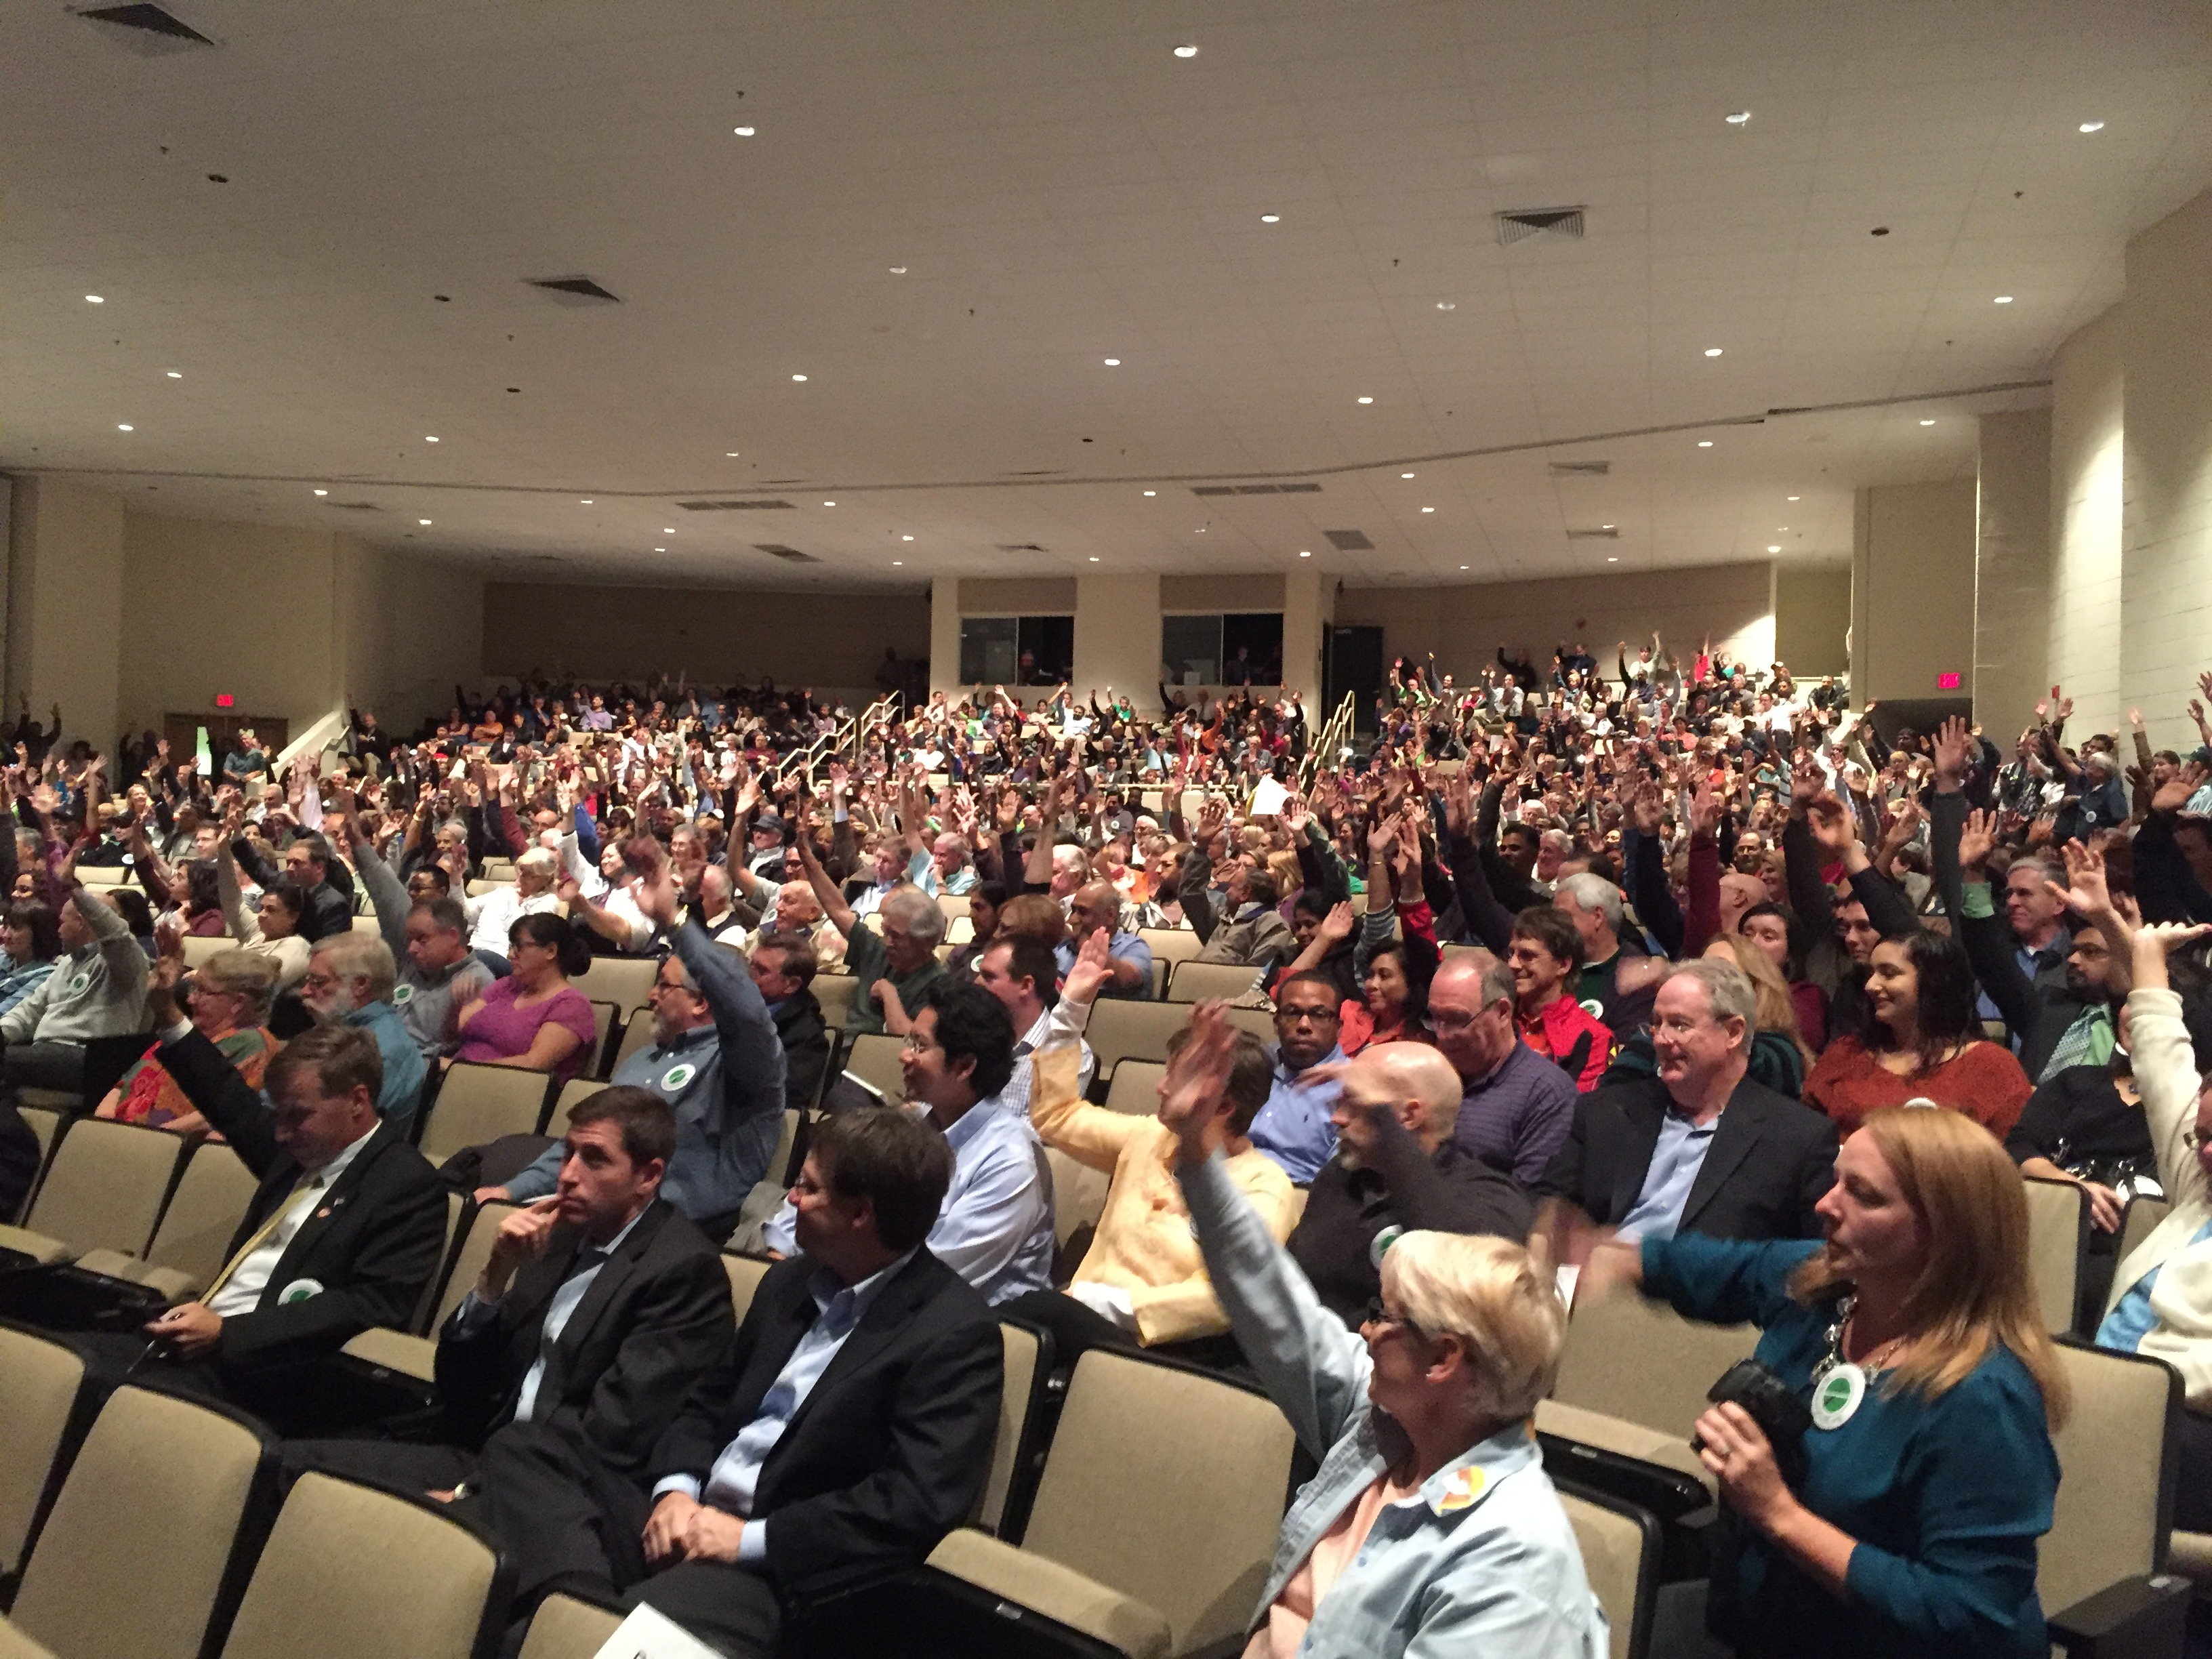 Loudoun County residents pack hearing on plans for high-voltage power lines